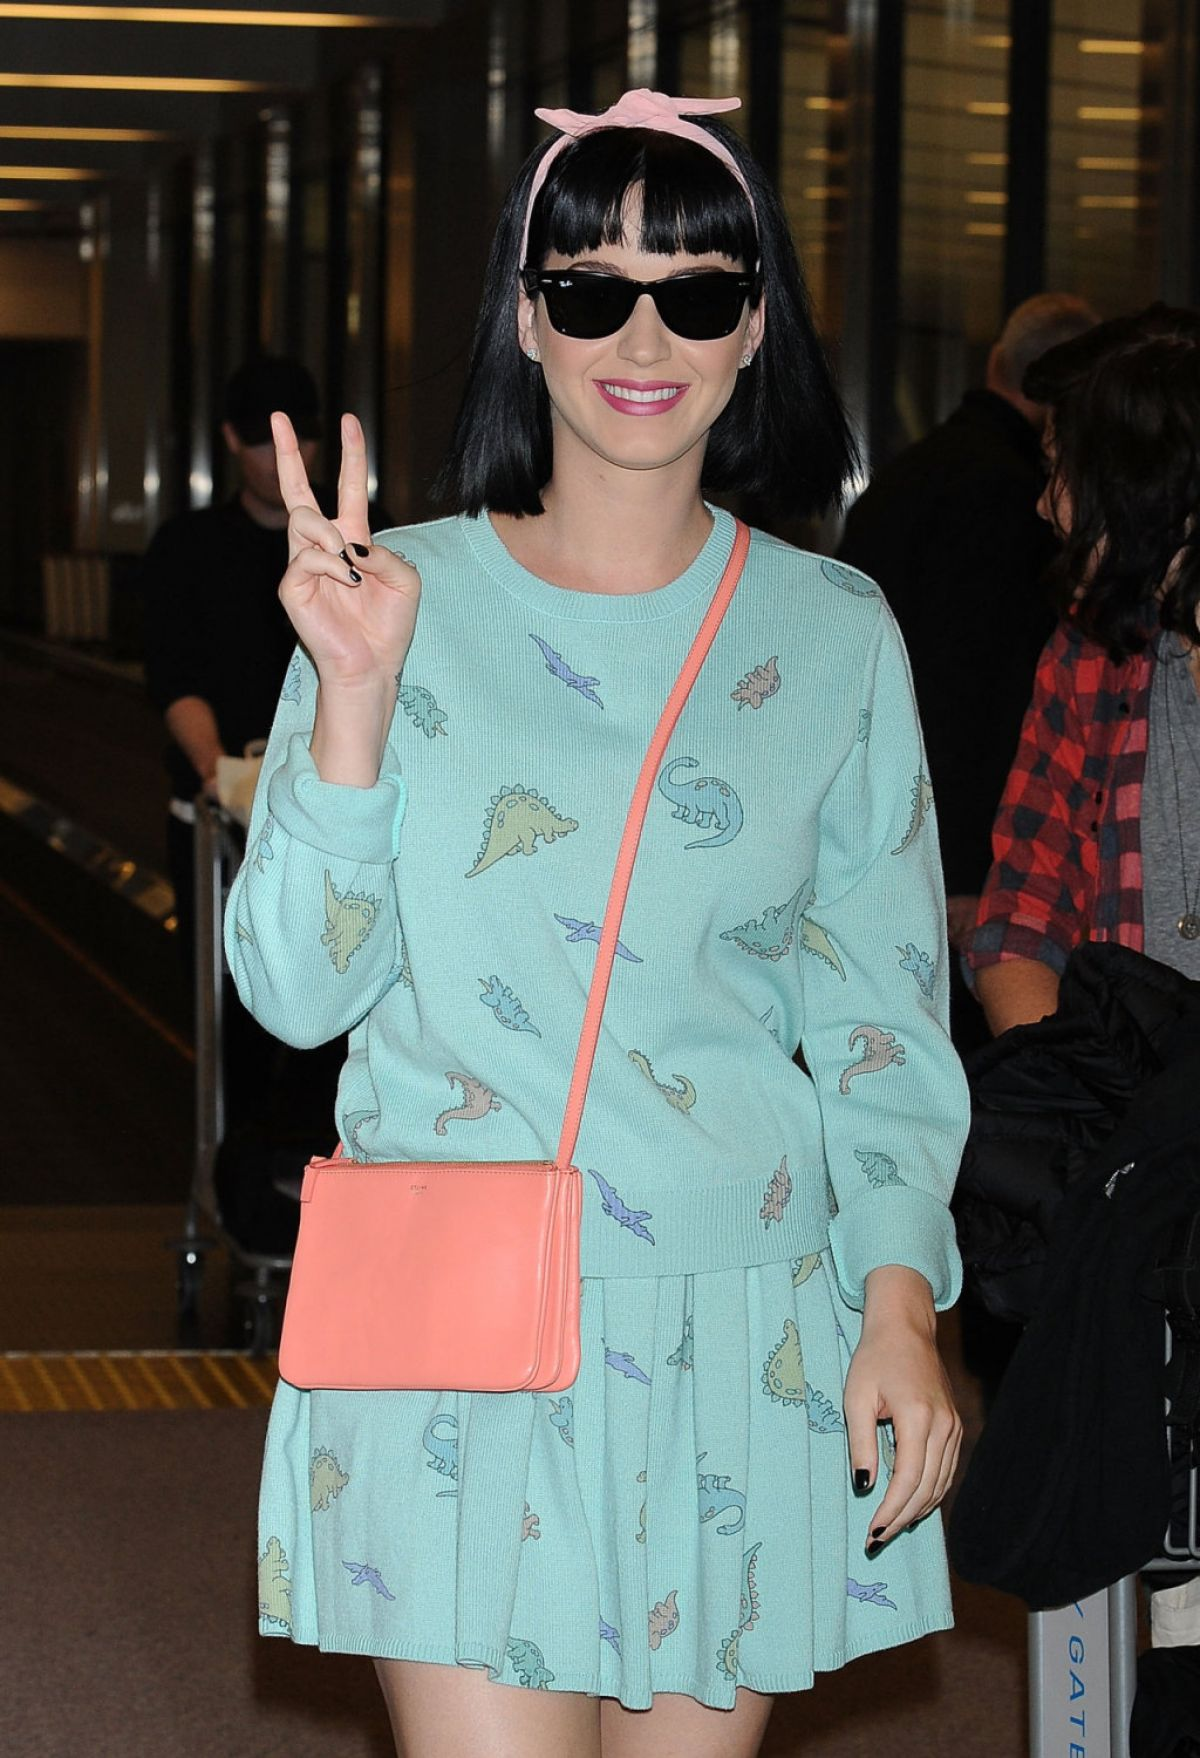 Katy Perry Arriving At Narita International Airport In Tokyo